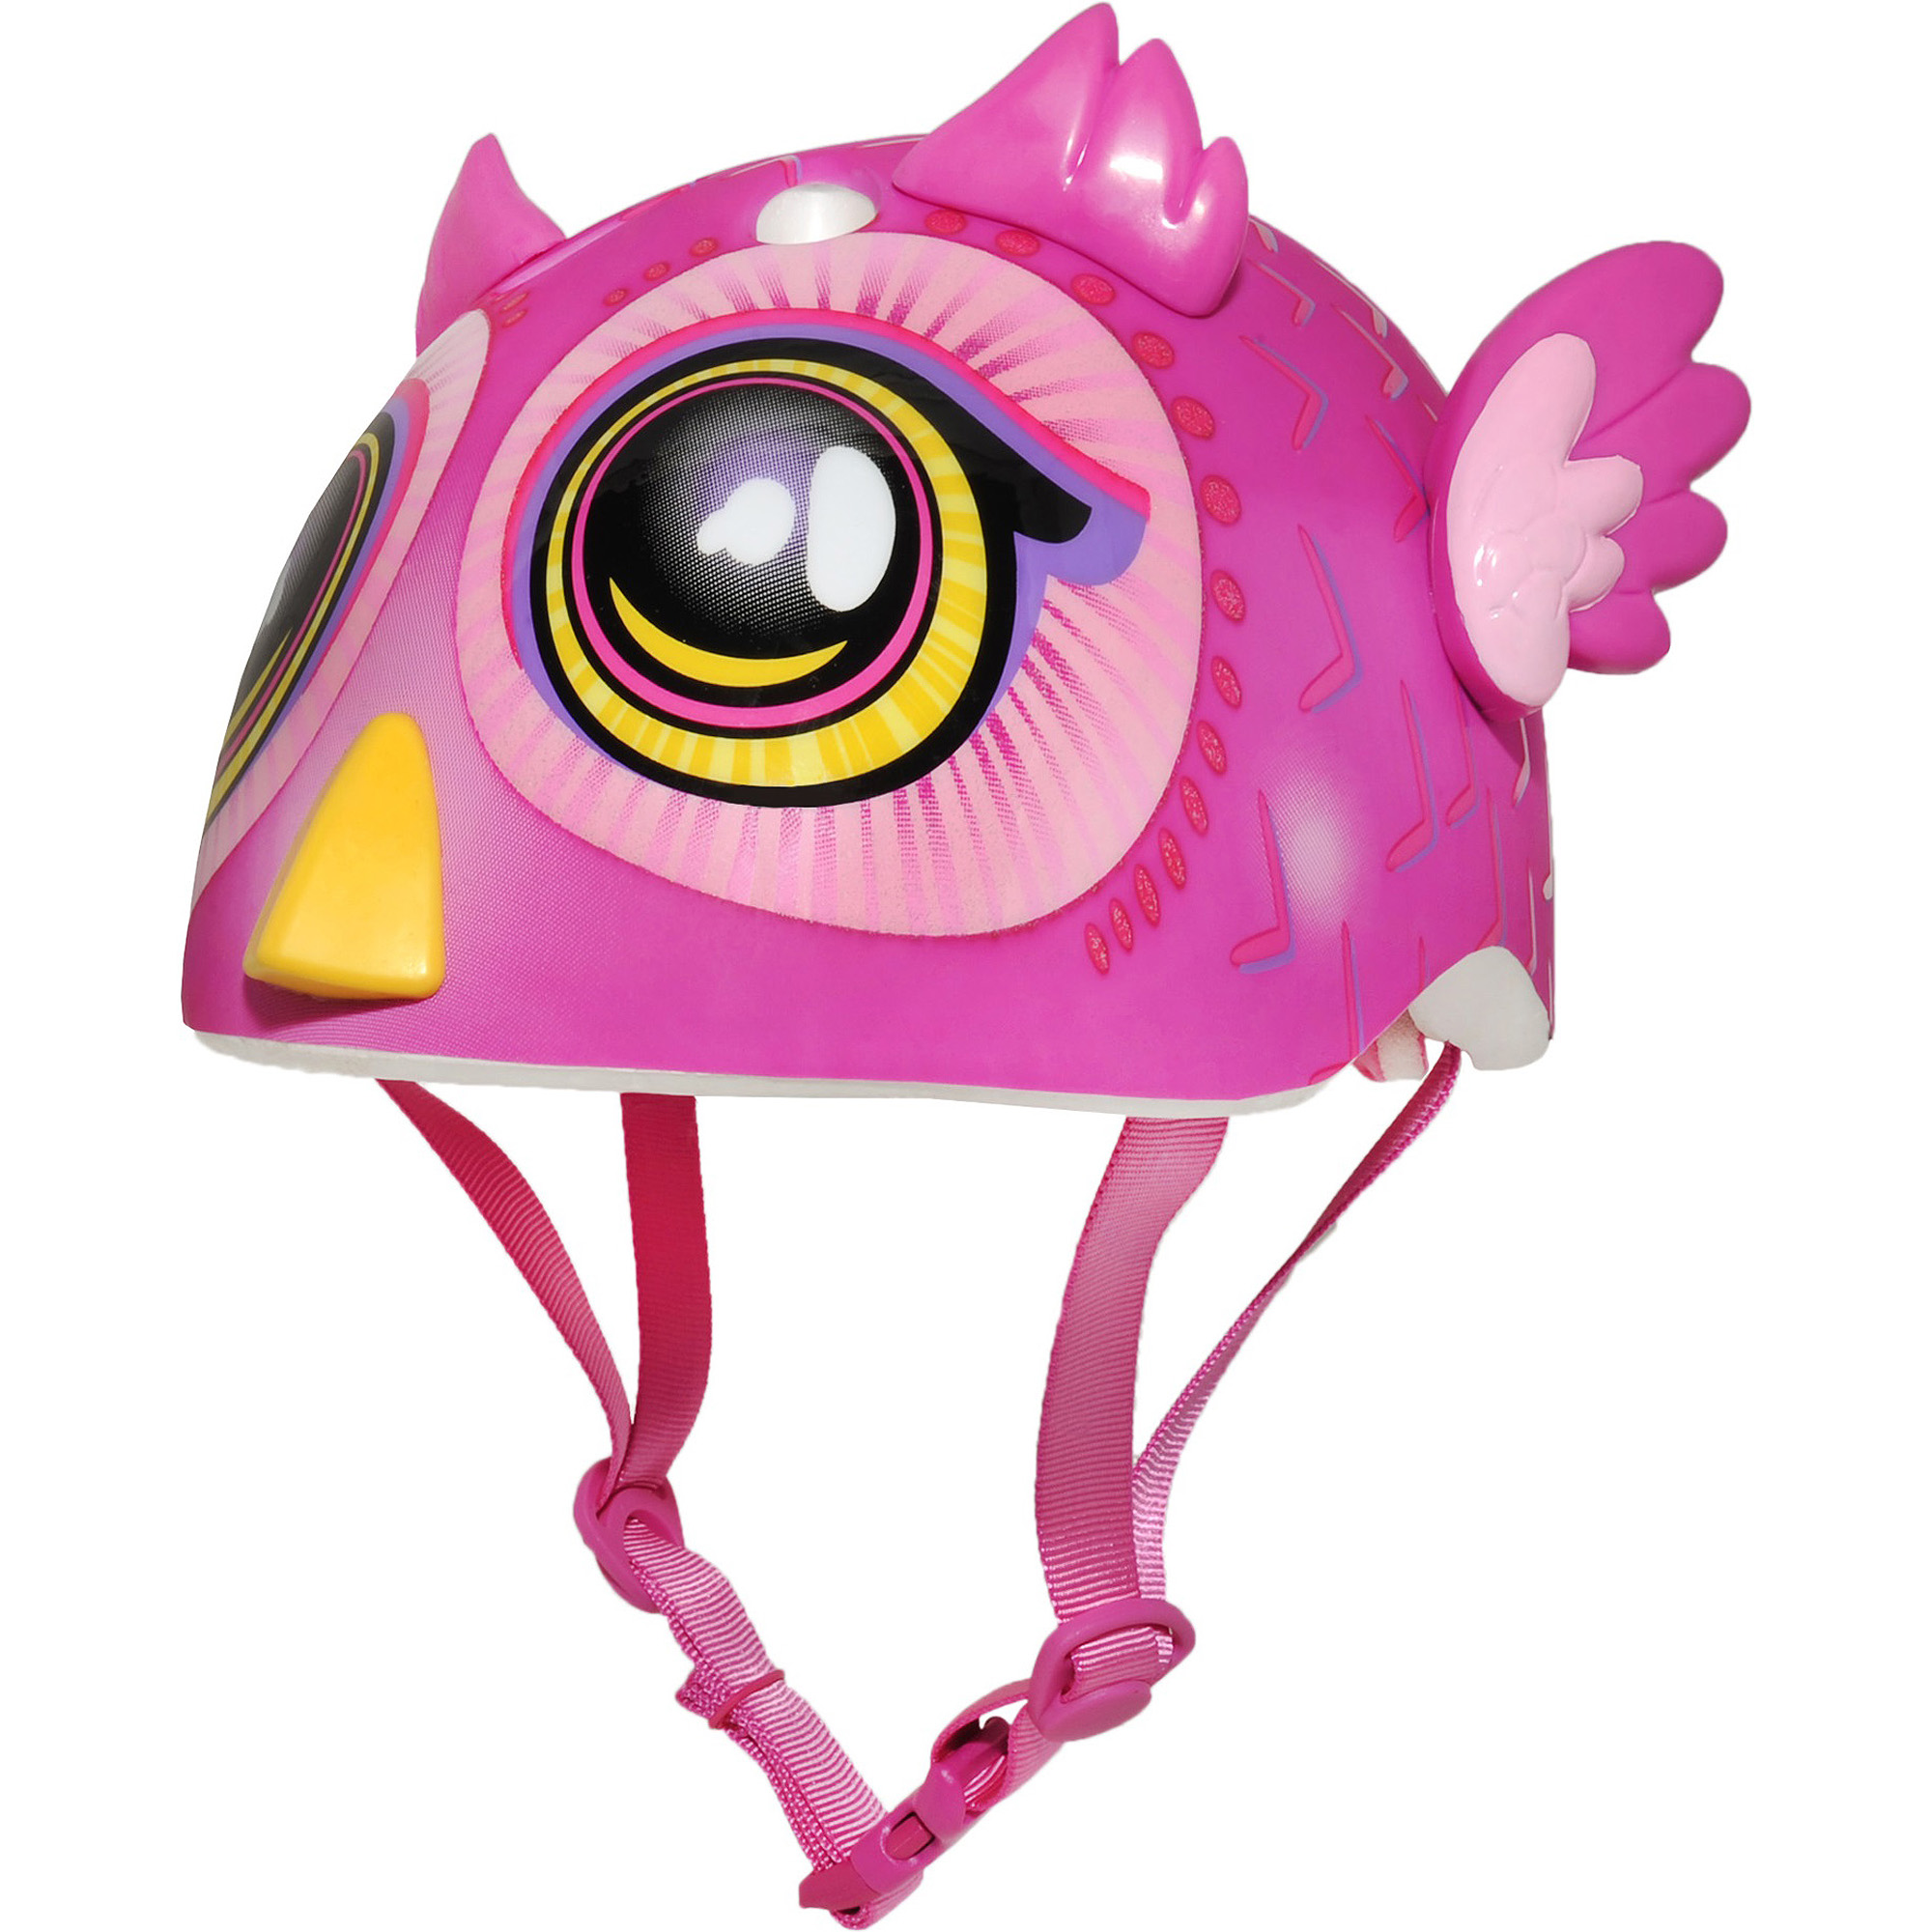 Raskullz Big Eyes Owl Miniz Bike Helmet, Toddler (18-24mos)